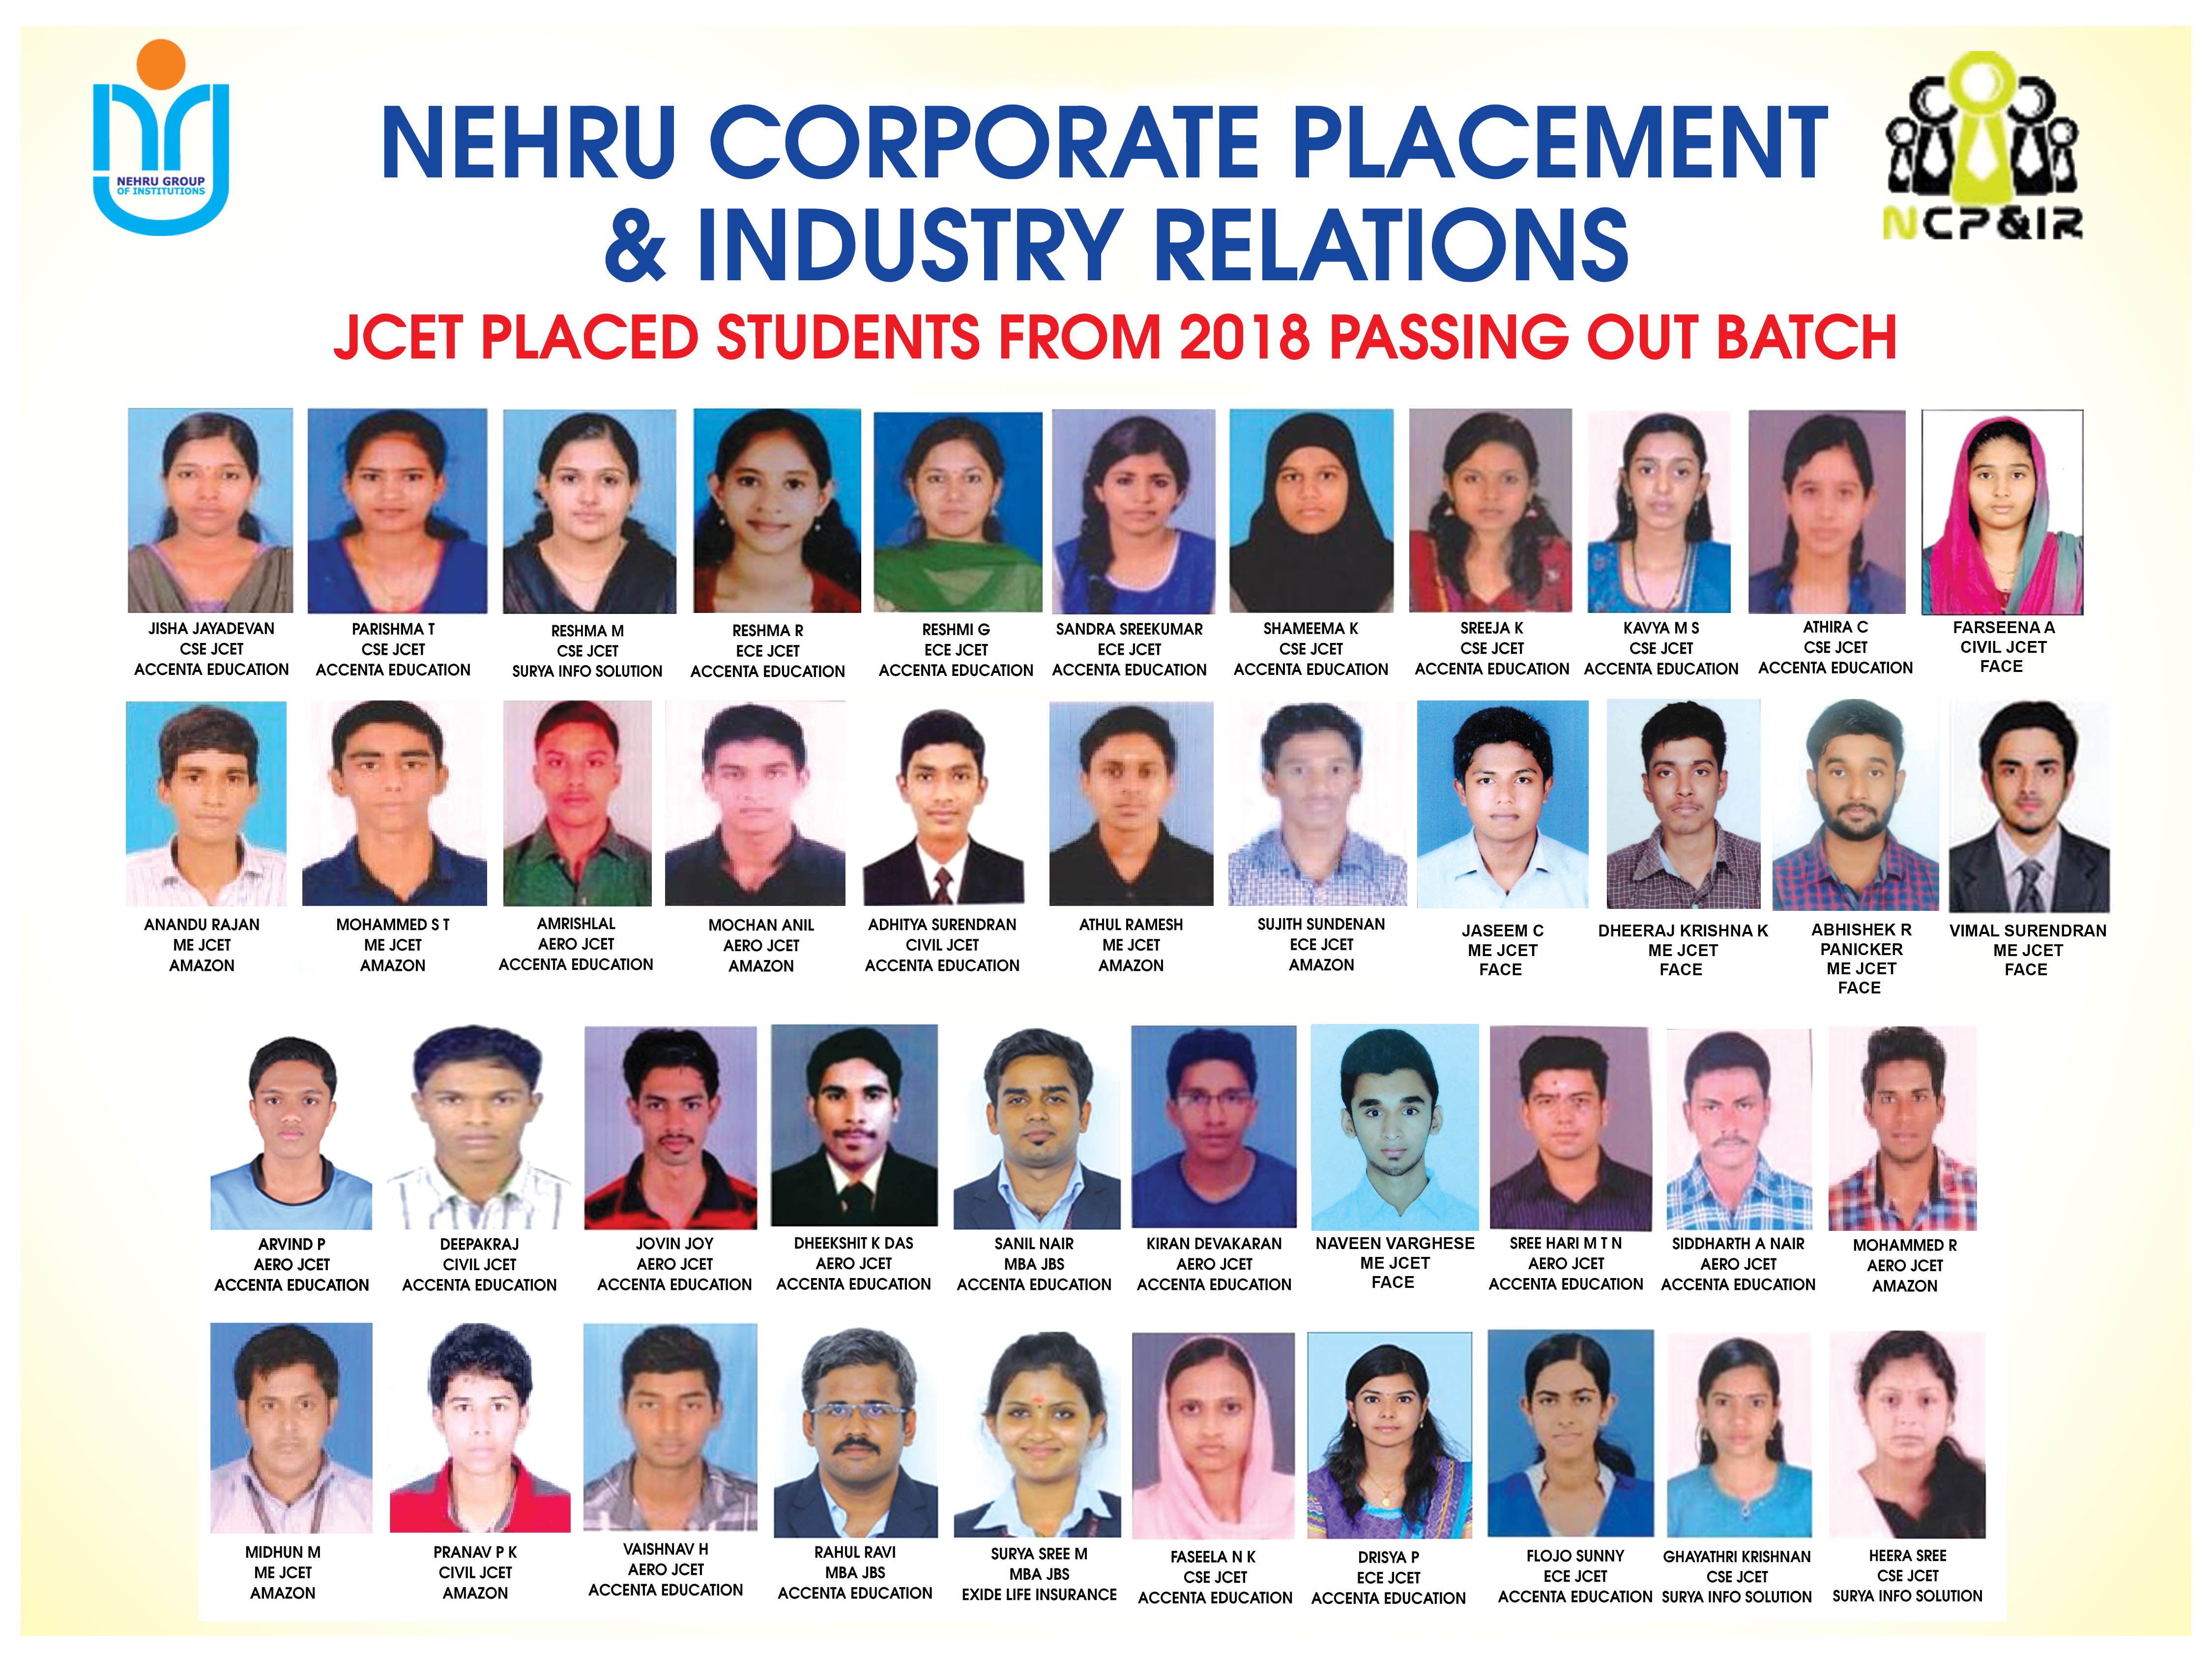 JCET PLACED STUDENTS FROM 2018 PASSING OUT BATCH